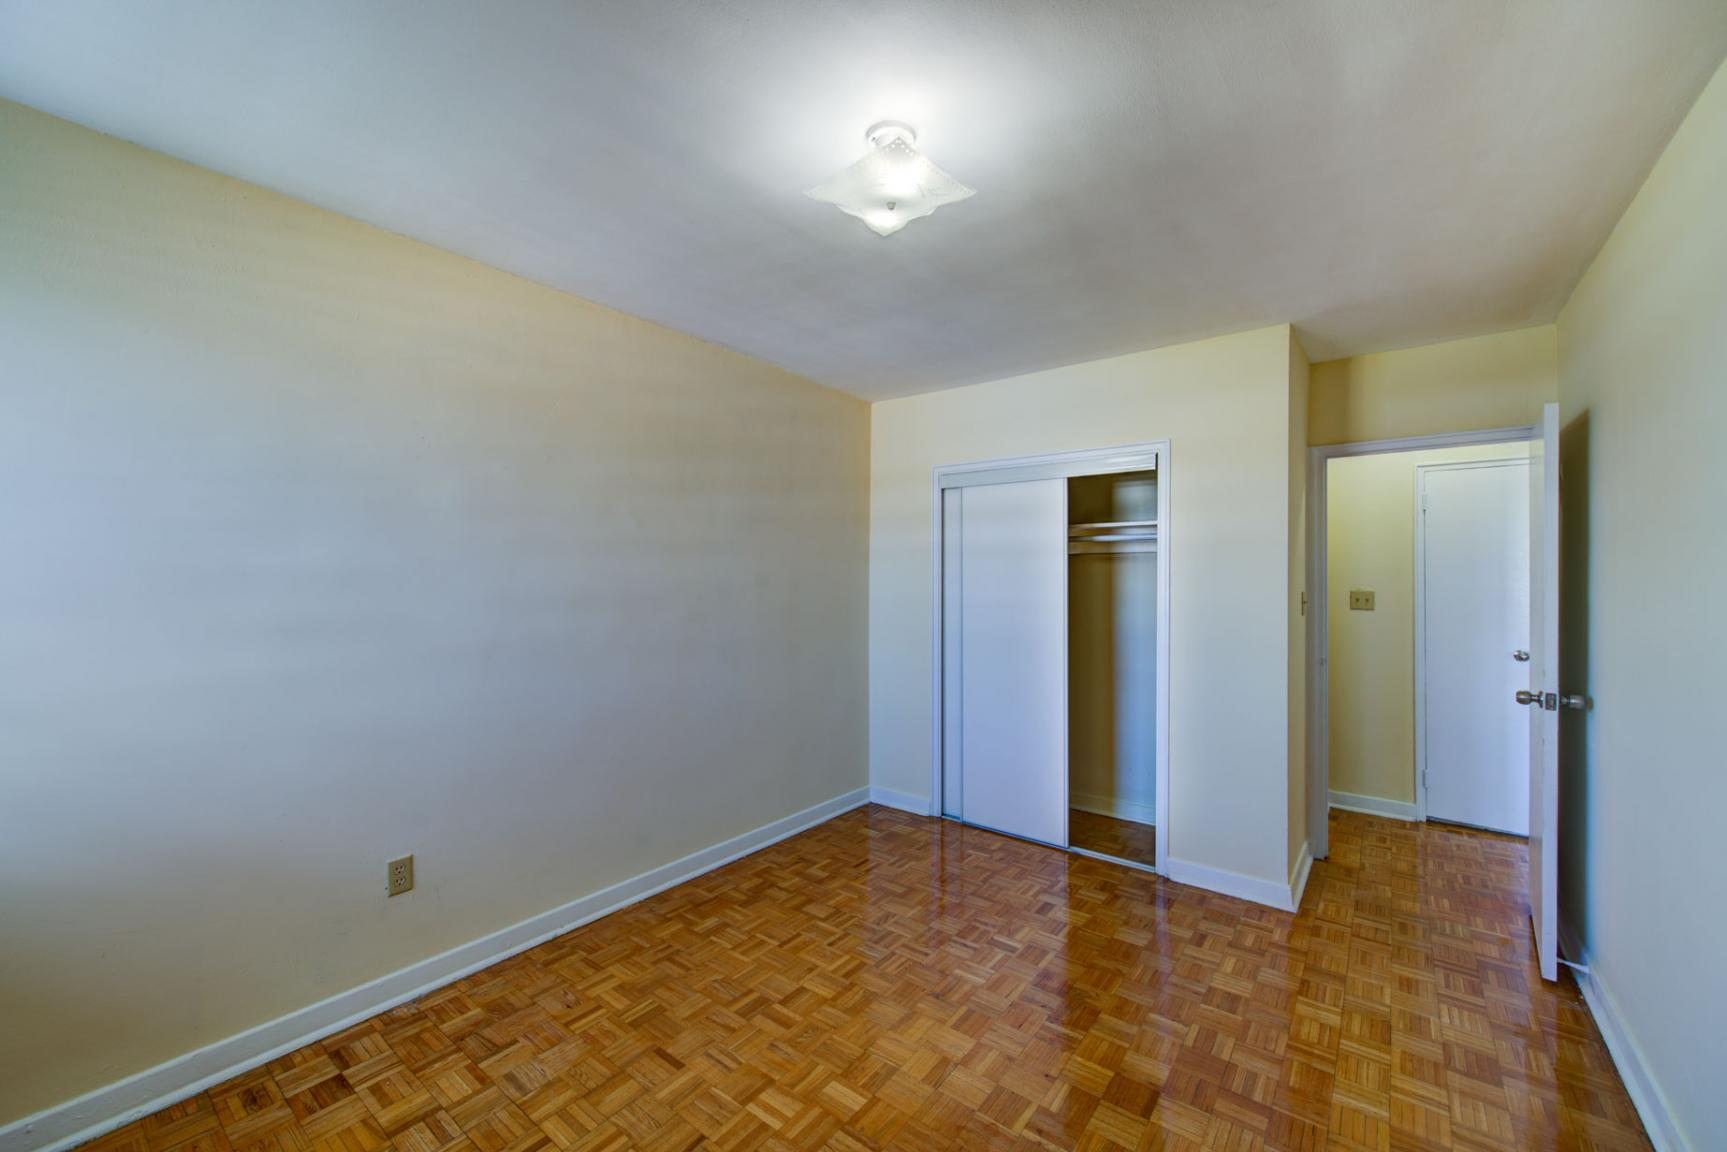 Studio / Bachelor Apartments for rent in Toronto at Lake Promenade Community - Photo 22 - RentersPages – L400279